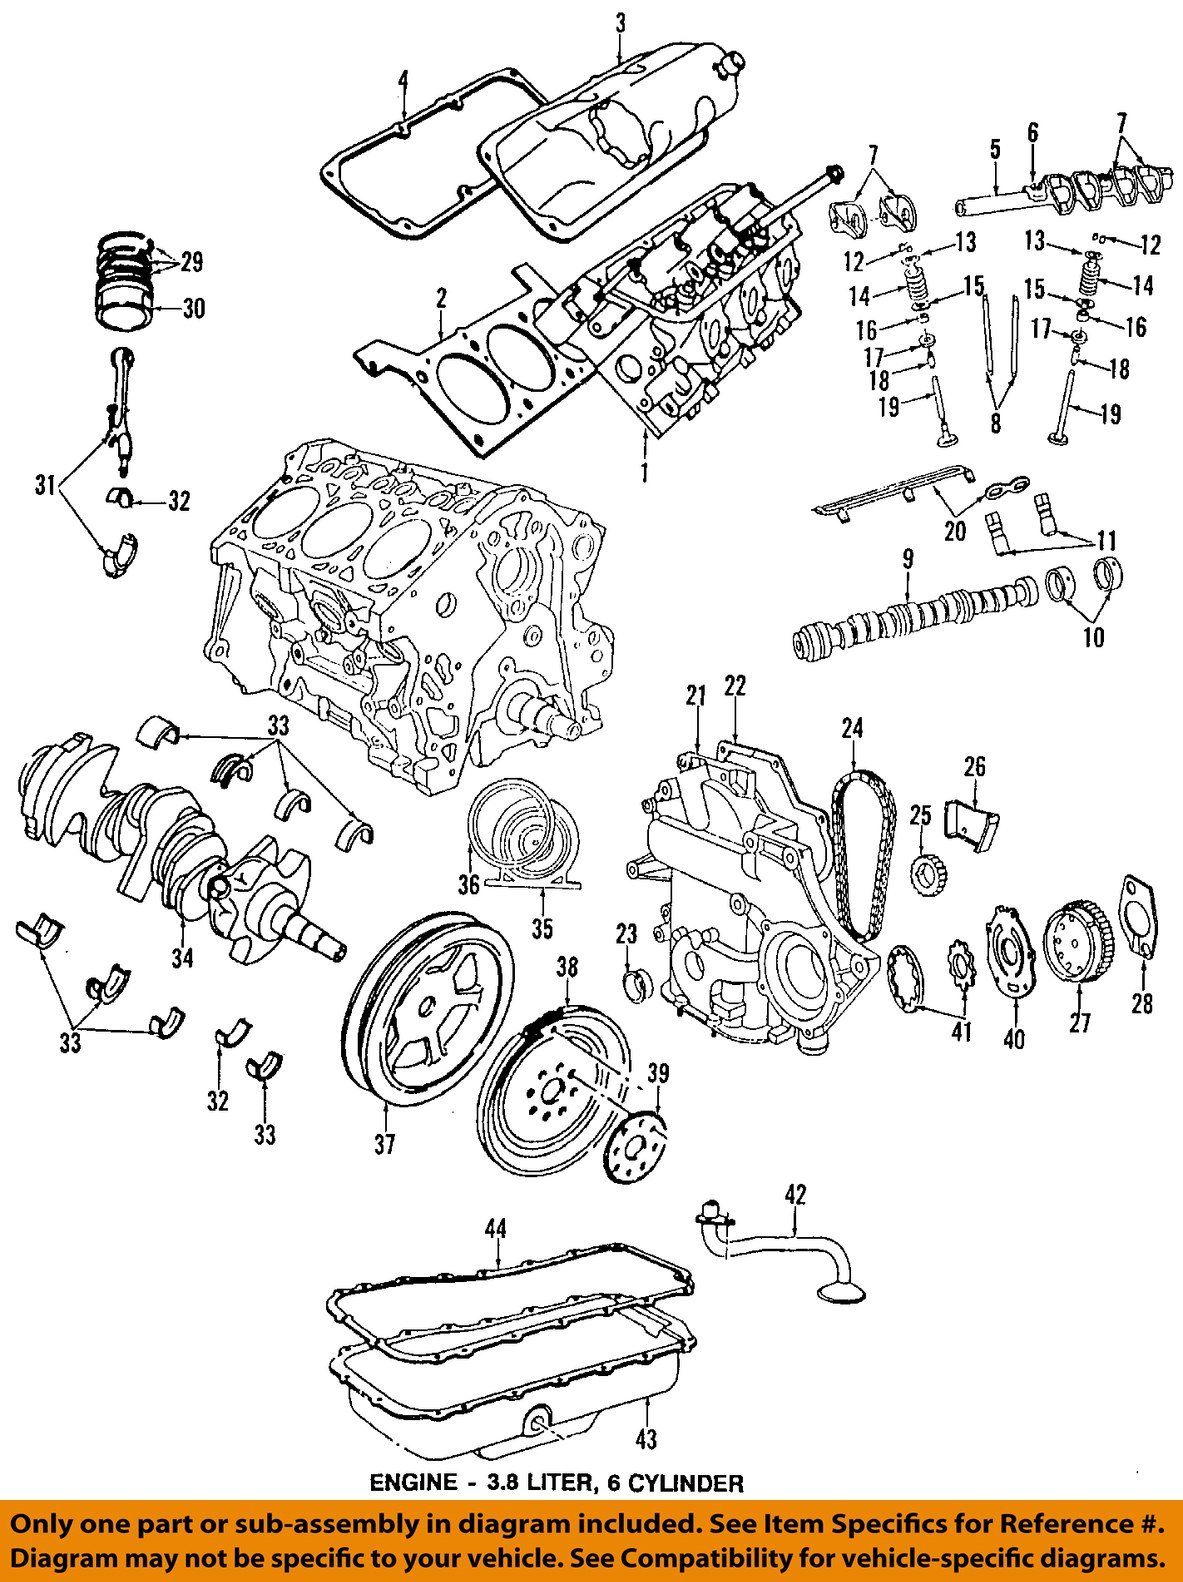 1992 Bmw 325i Engine Diagram Wiring Library 1989 645ci Enthusiast Diagrams U2022 2001 Common Problems 2005